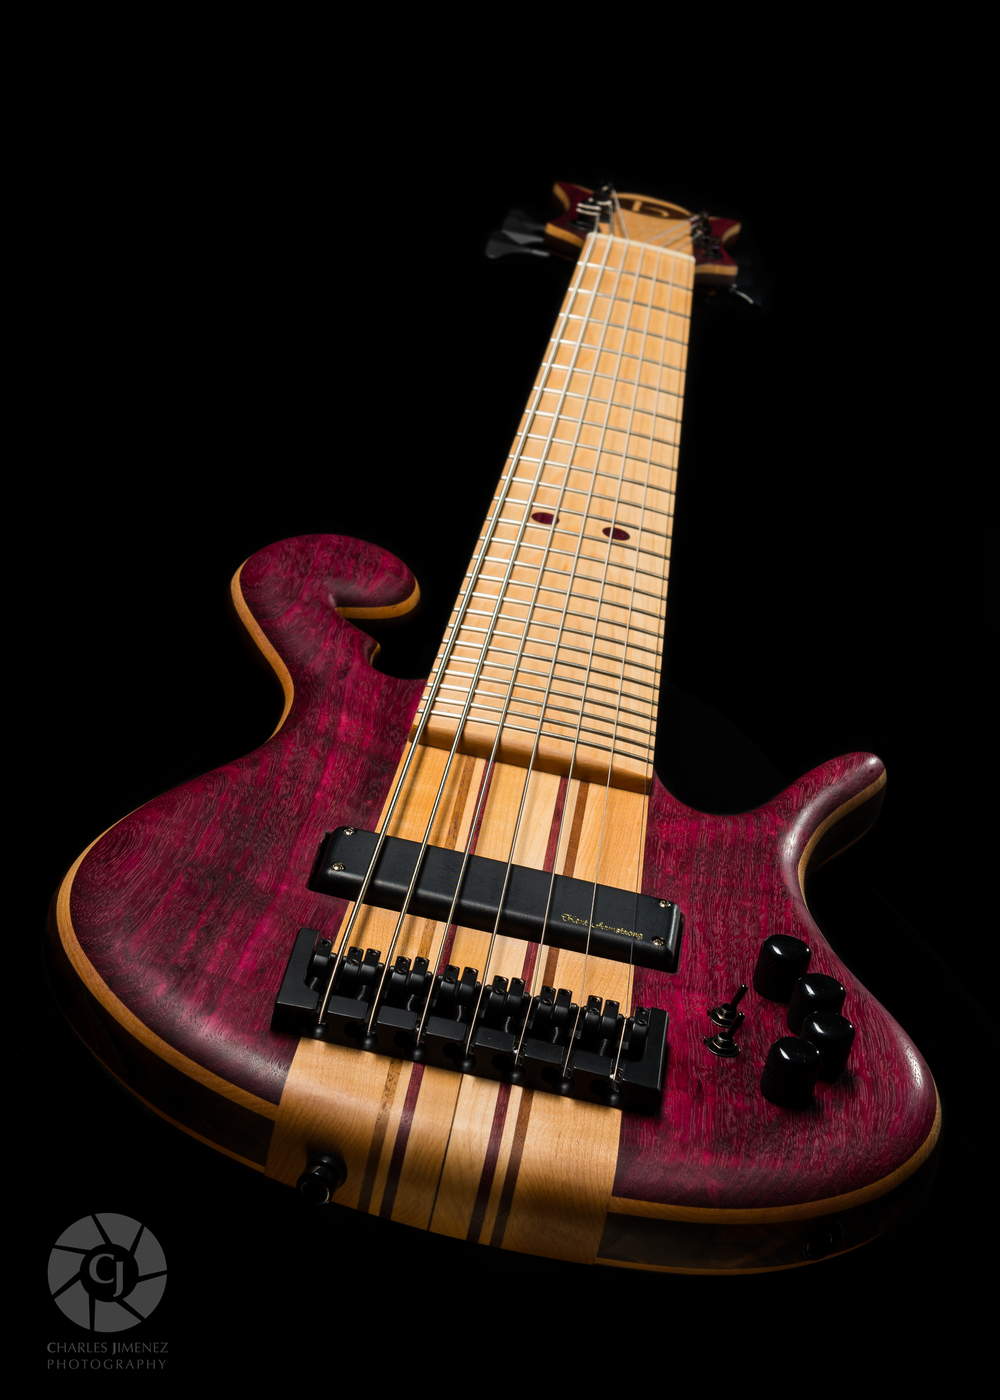 BMT Guitars_Grimace_January 04 2014_02.jpg